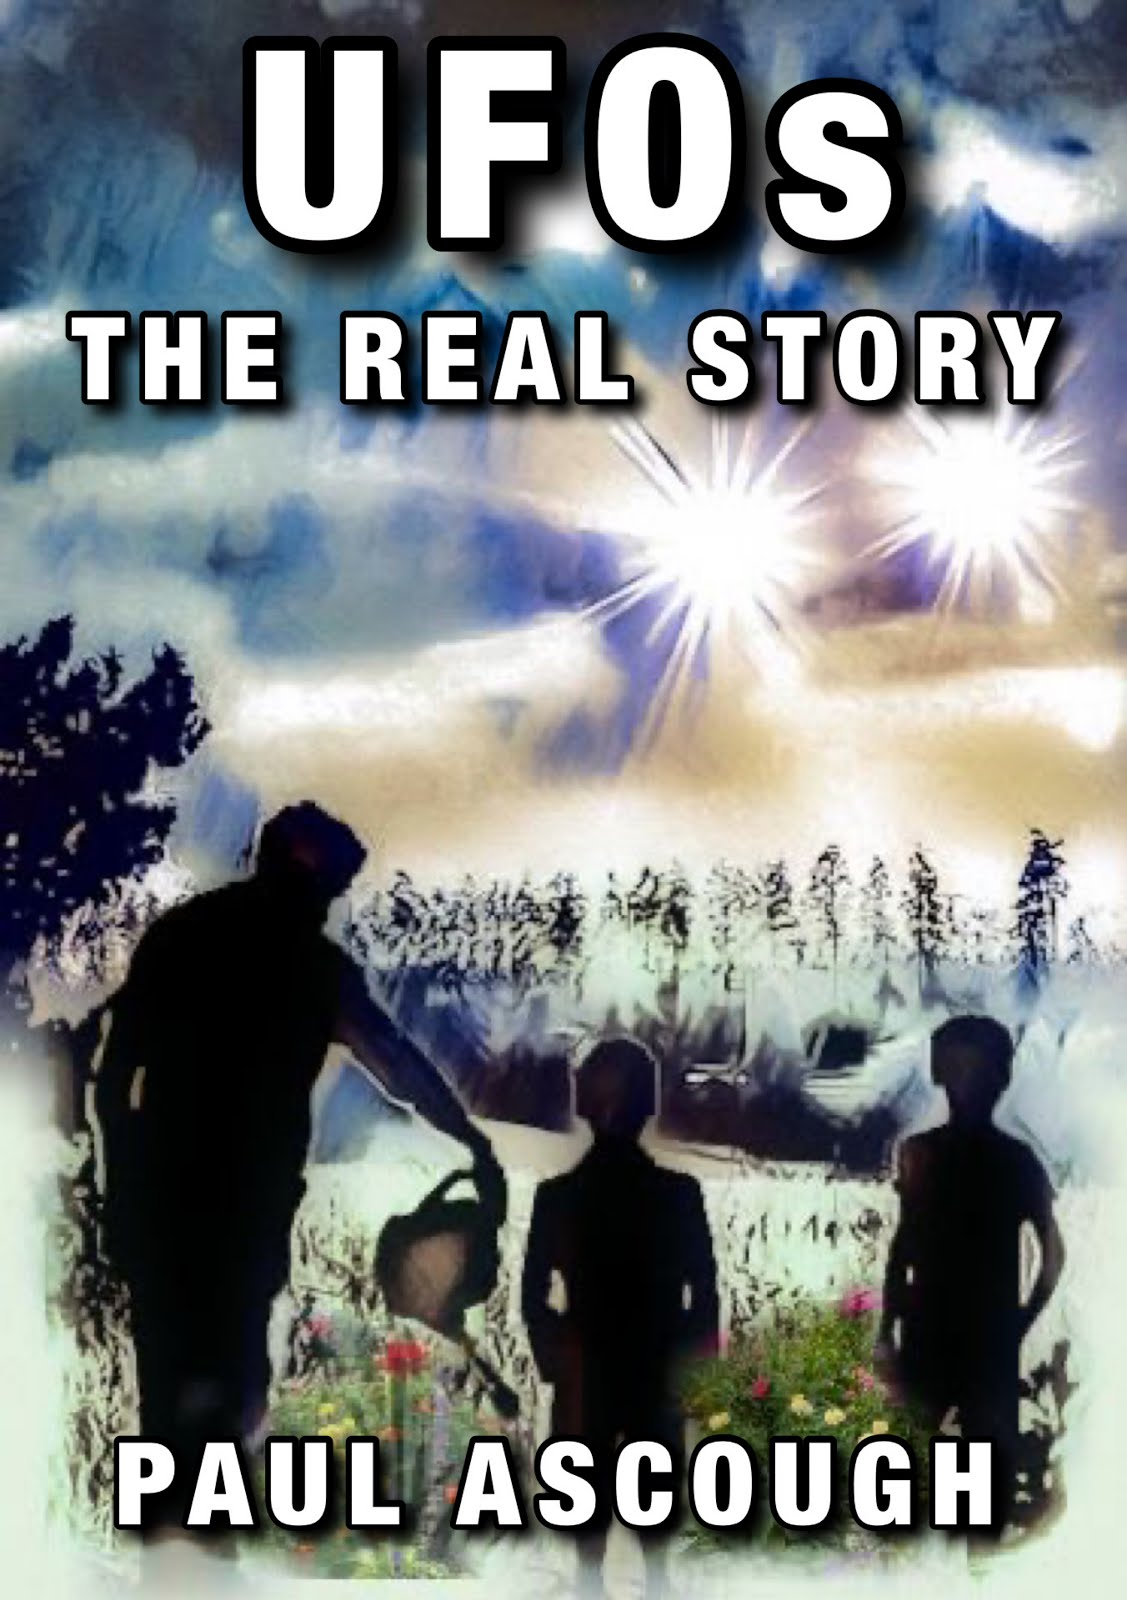 UFOs - THE REAL STORY BY PAUL ASCOUGH